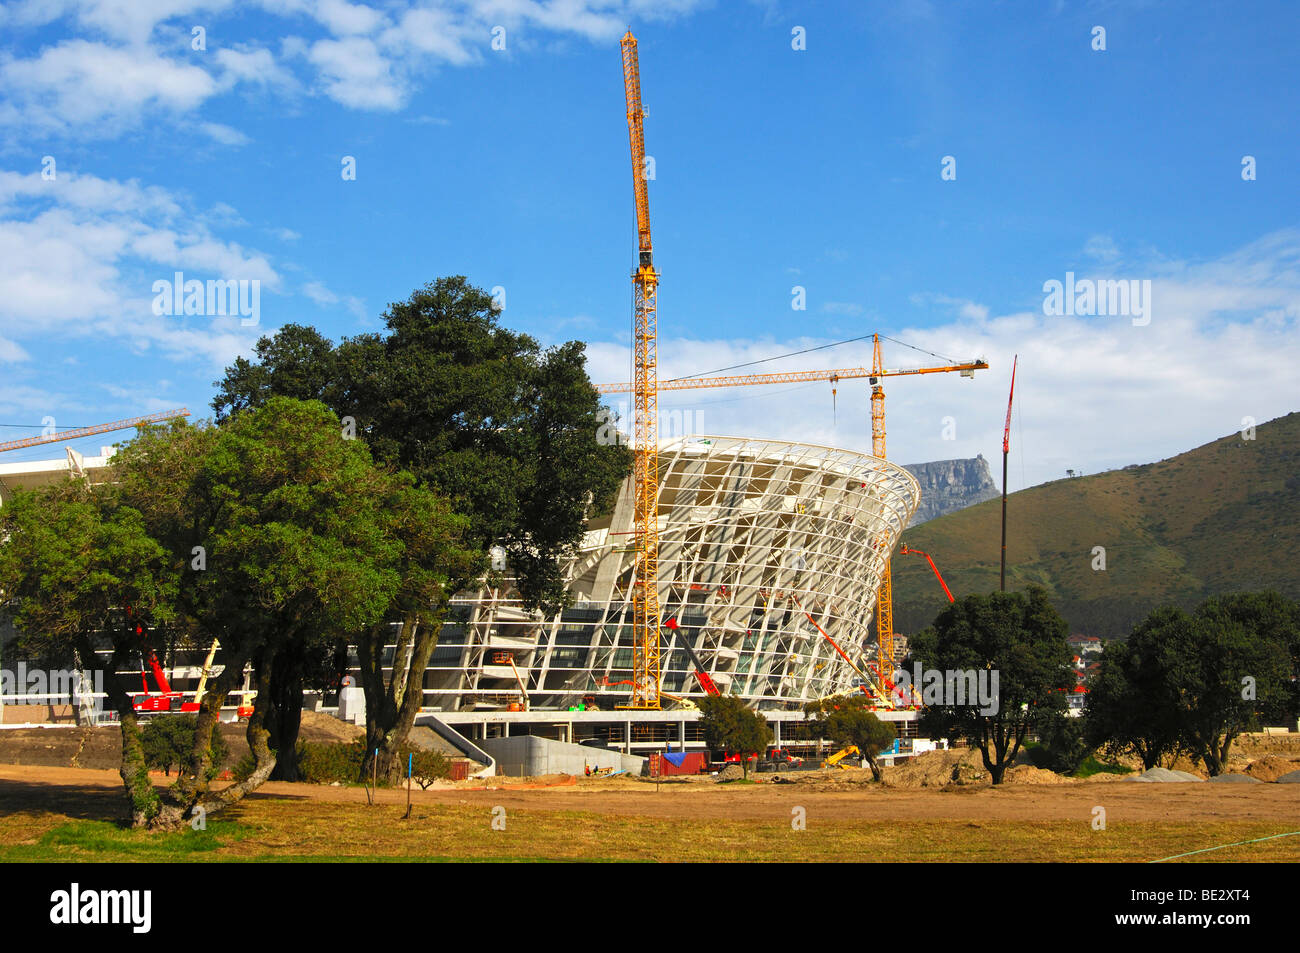 Soccer World Championship 2010, Green Point Soccer Stadium under construction, peak of the Table Mountain at back, - Stock Image